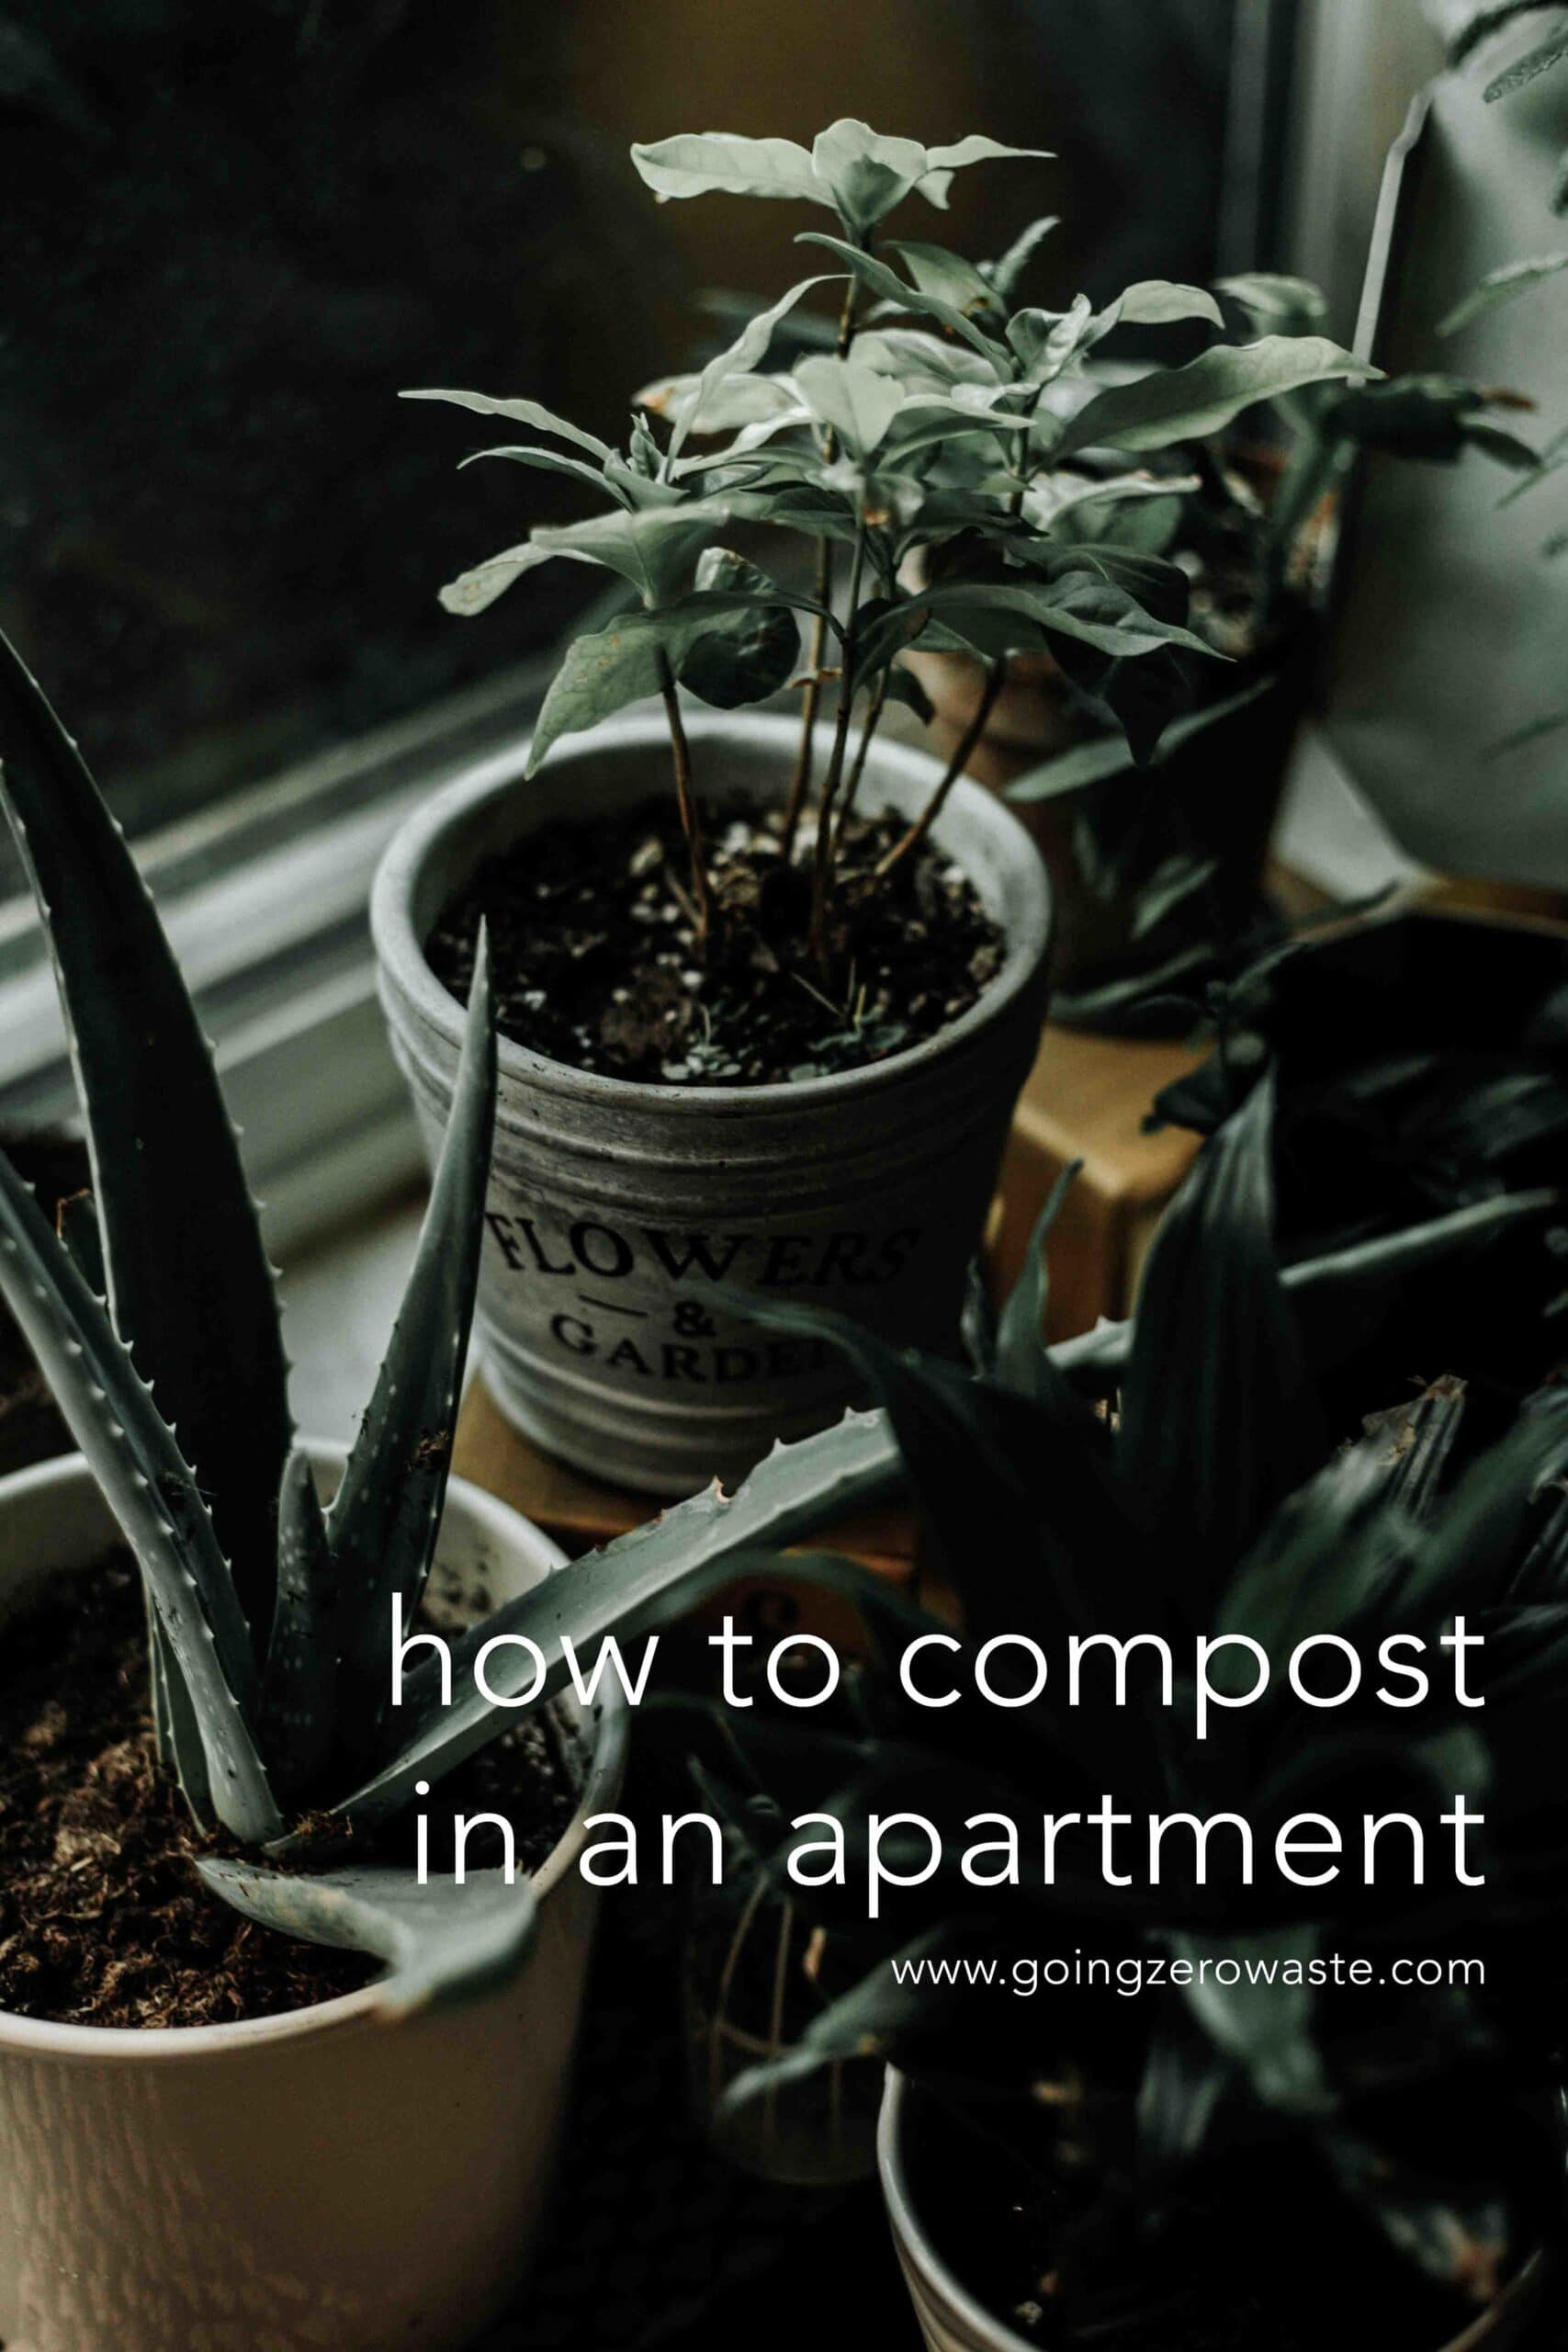 Composting in apartments